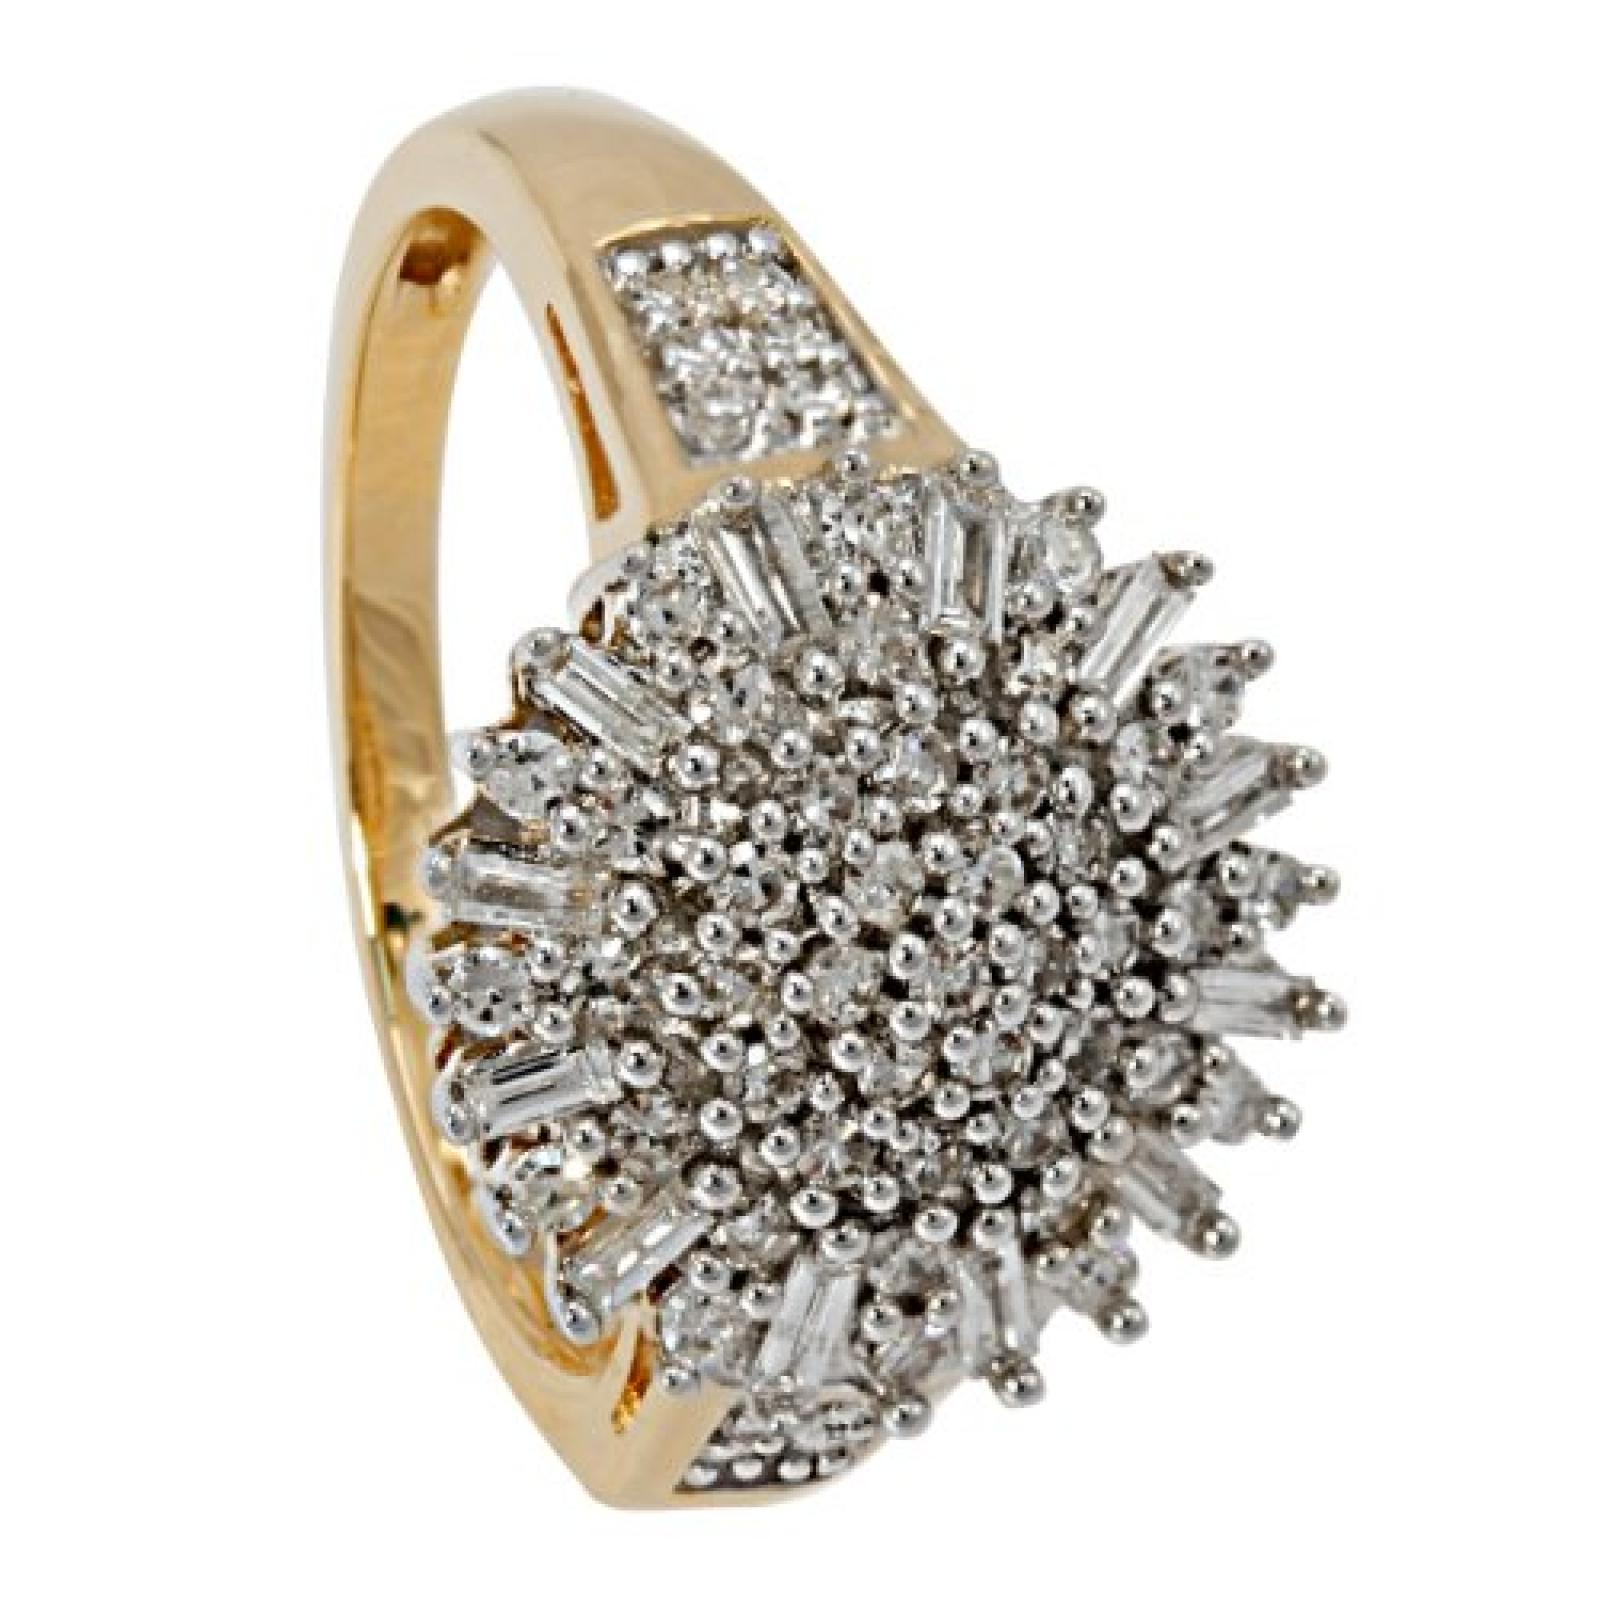 Bella Donna Damen-Ring 585 Gelbgold 67 Diamanten